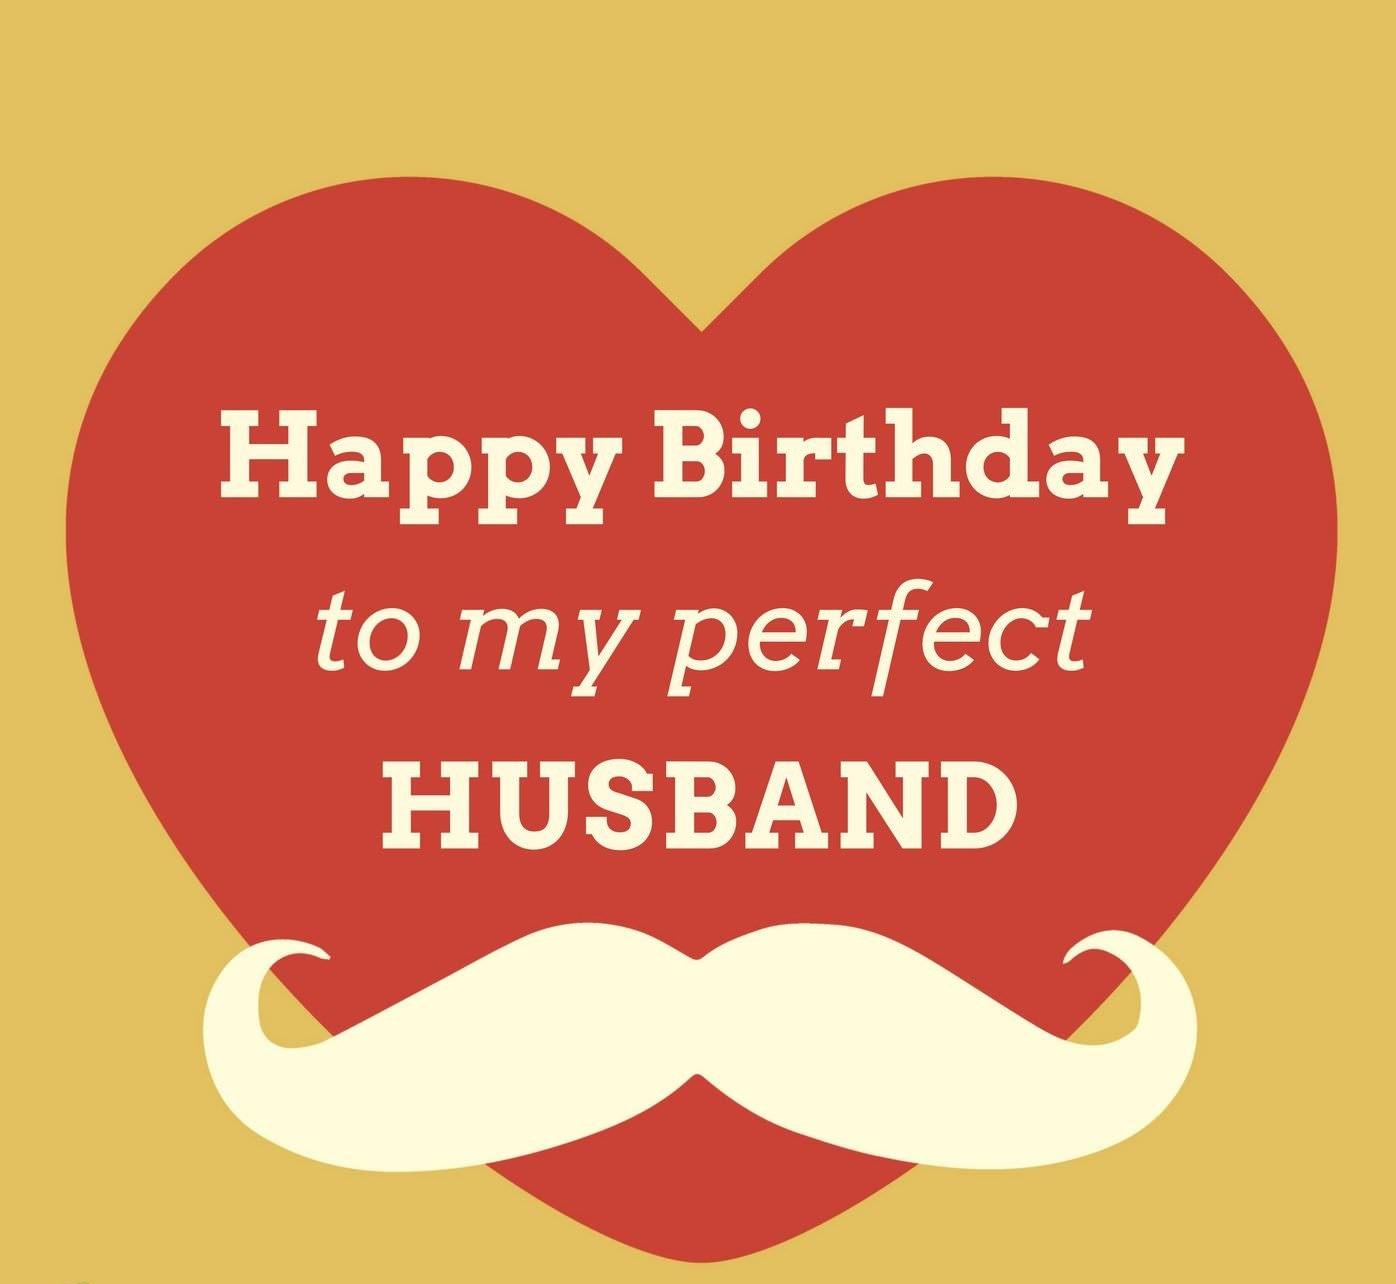 Top Romantic Birthday Wishes For Husband